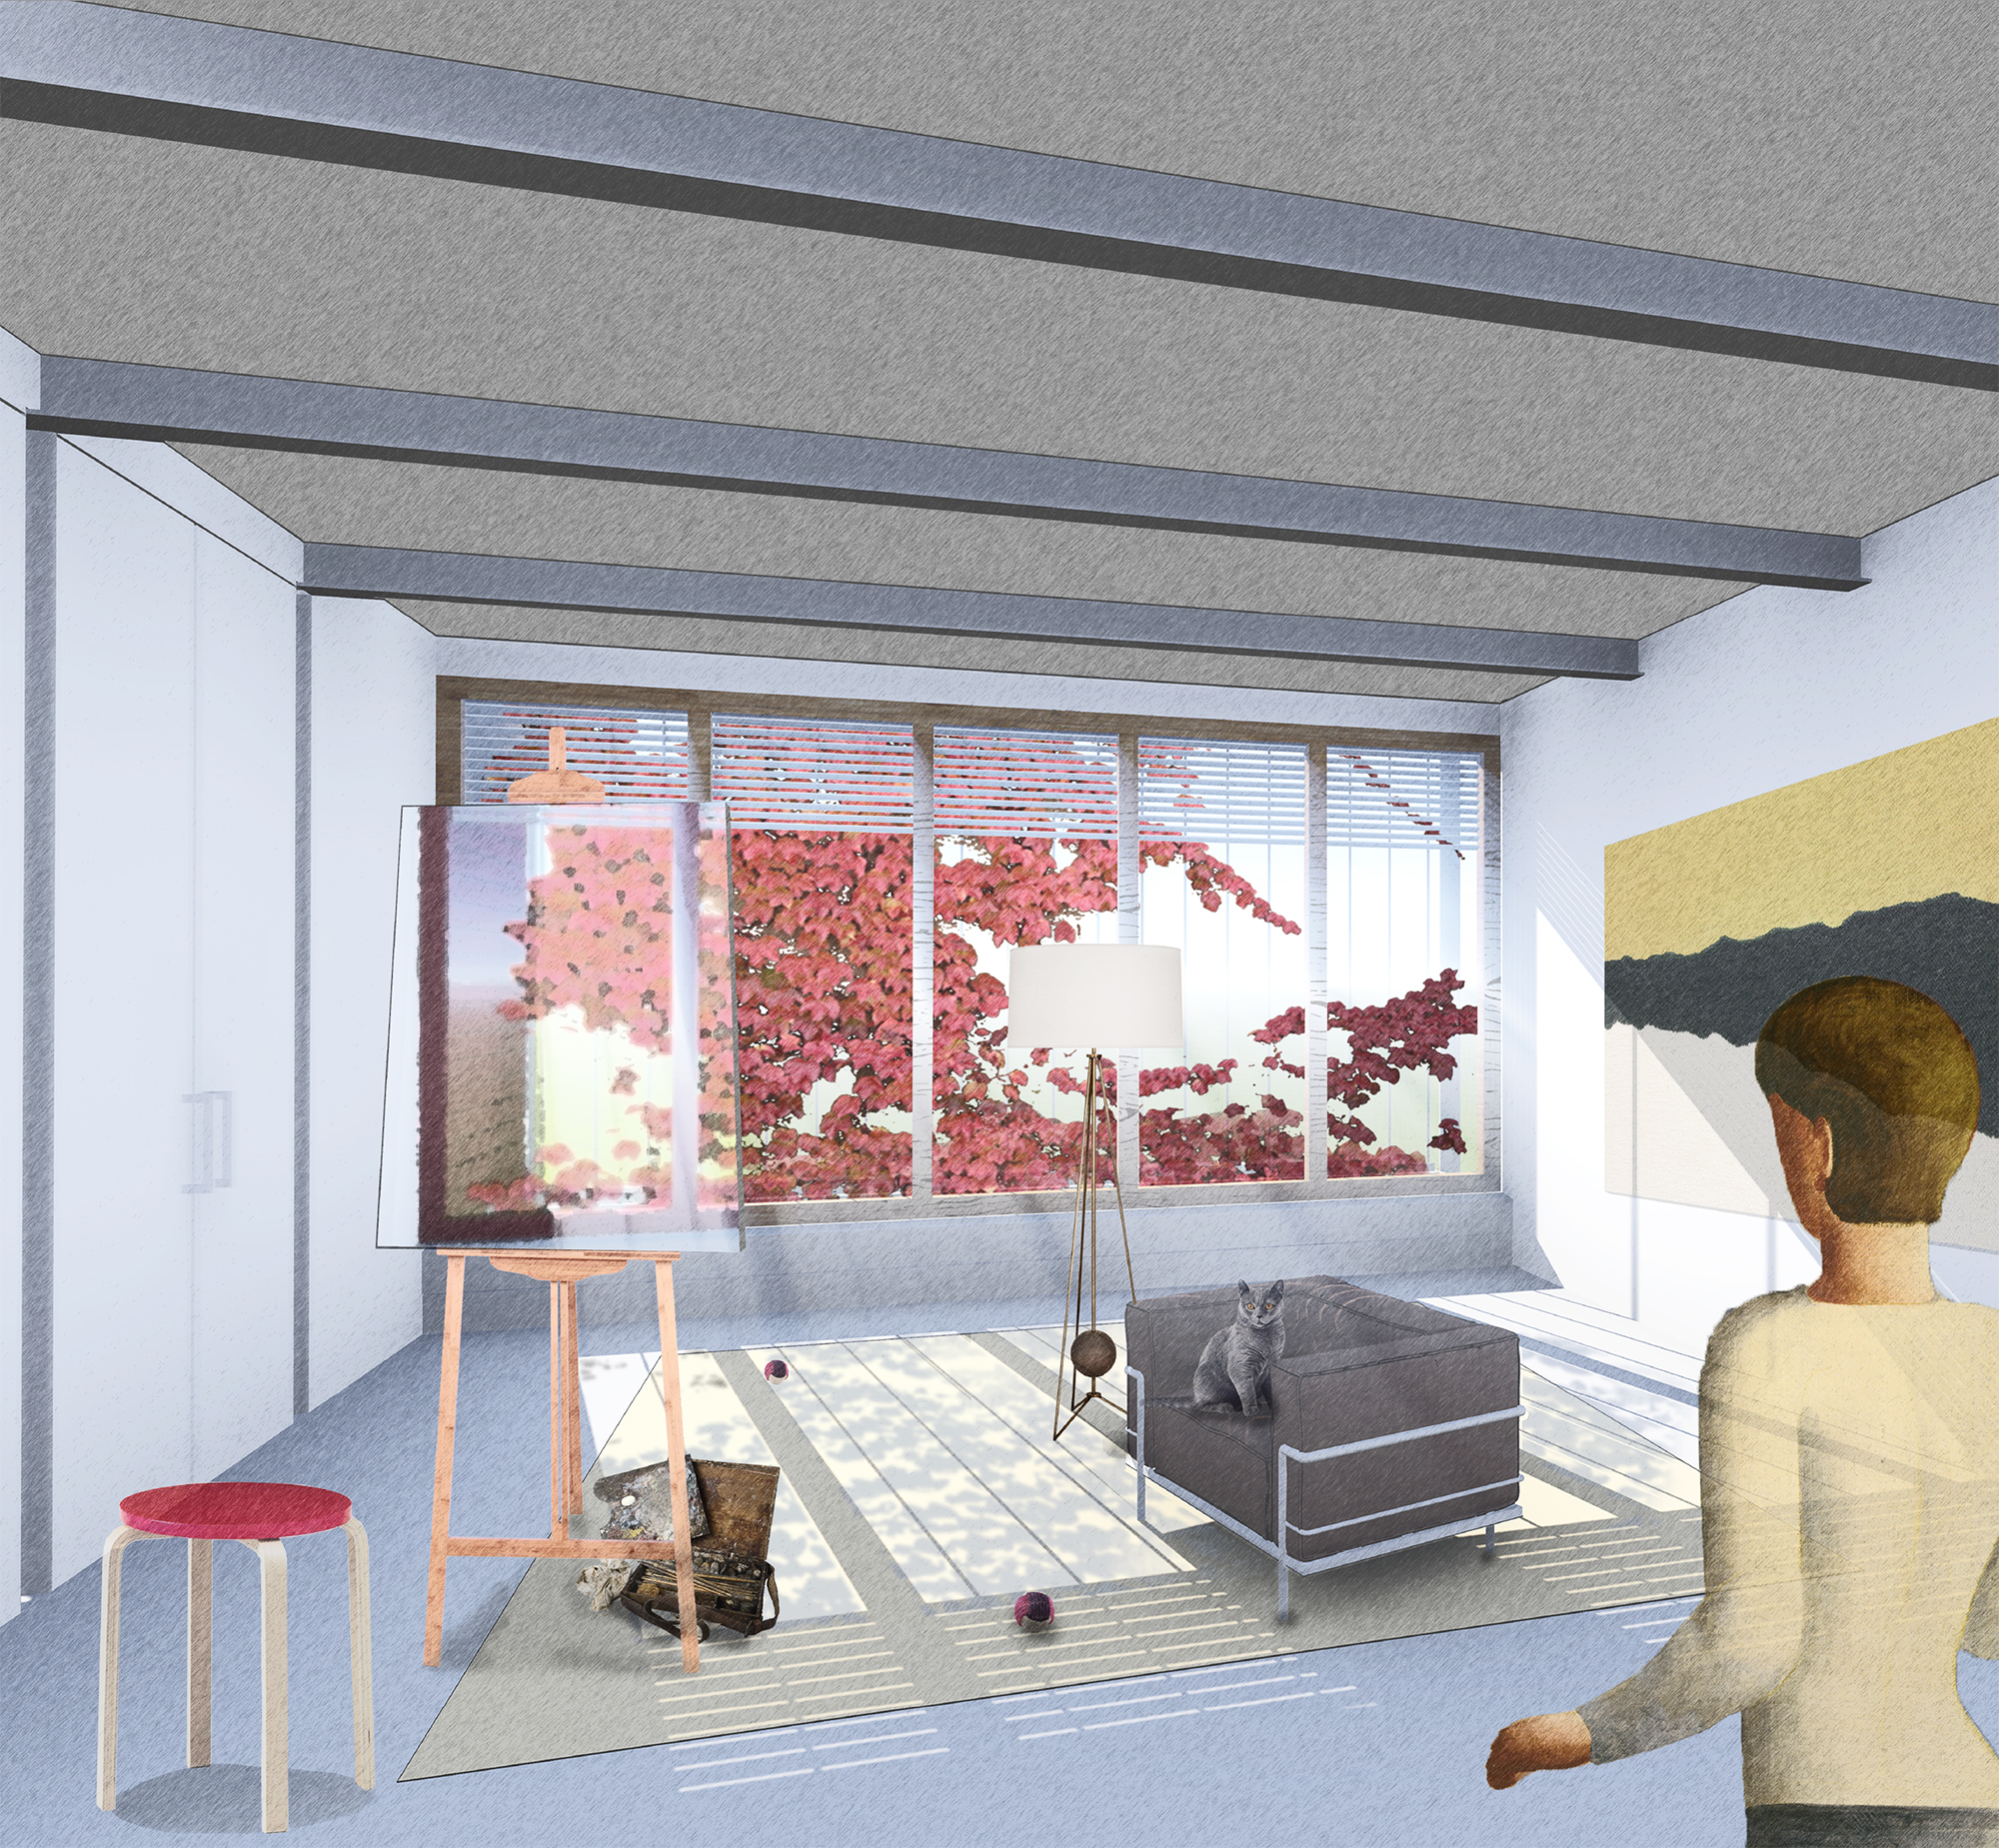 Proposed interior view at 108 West 123rd Street, showing the vegetation and effect on light